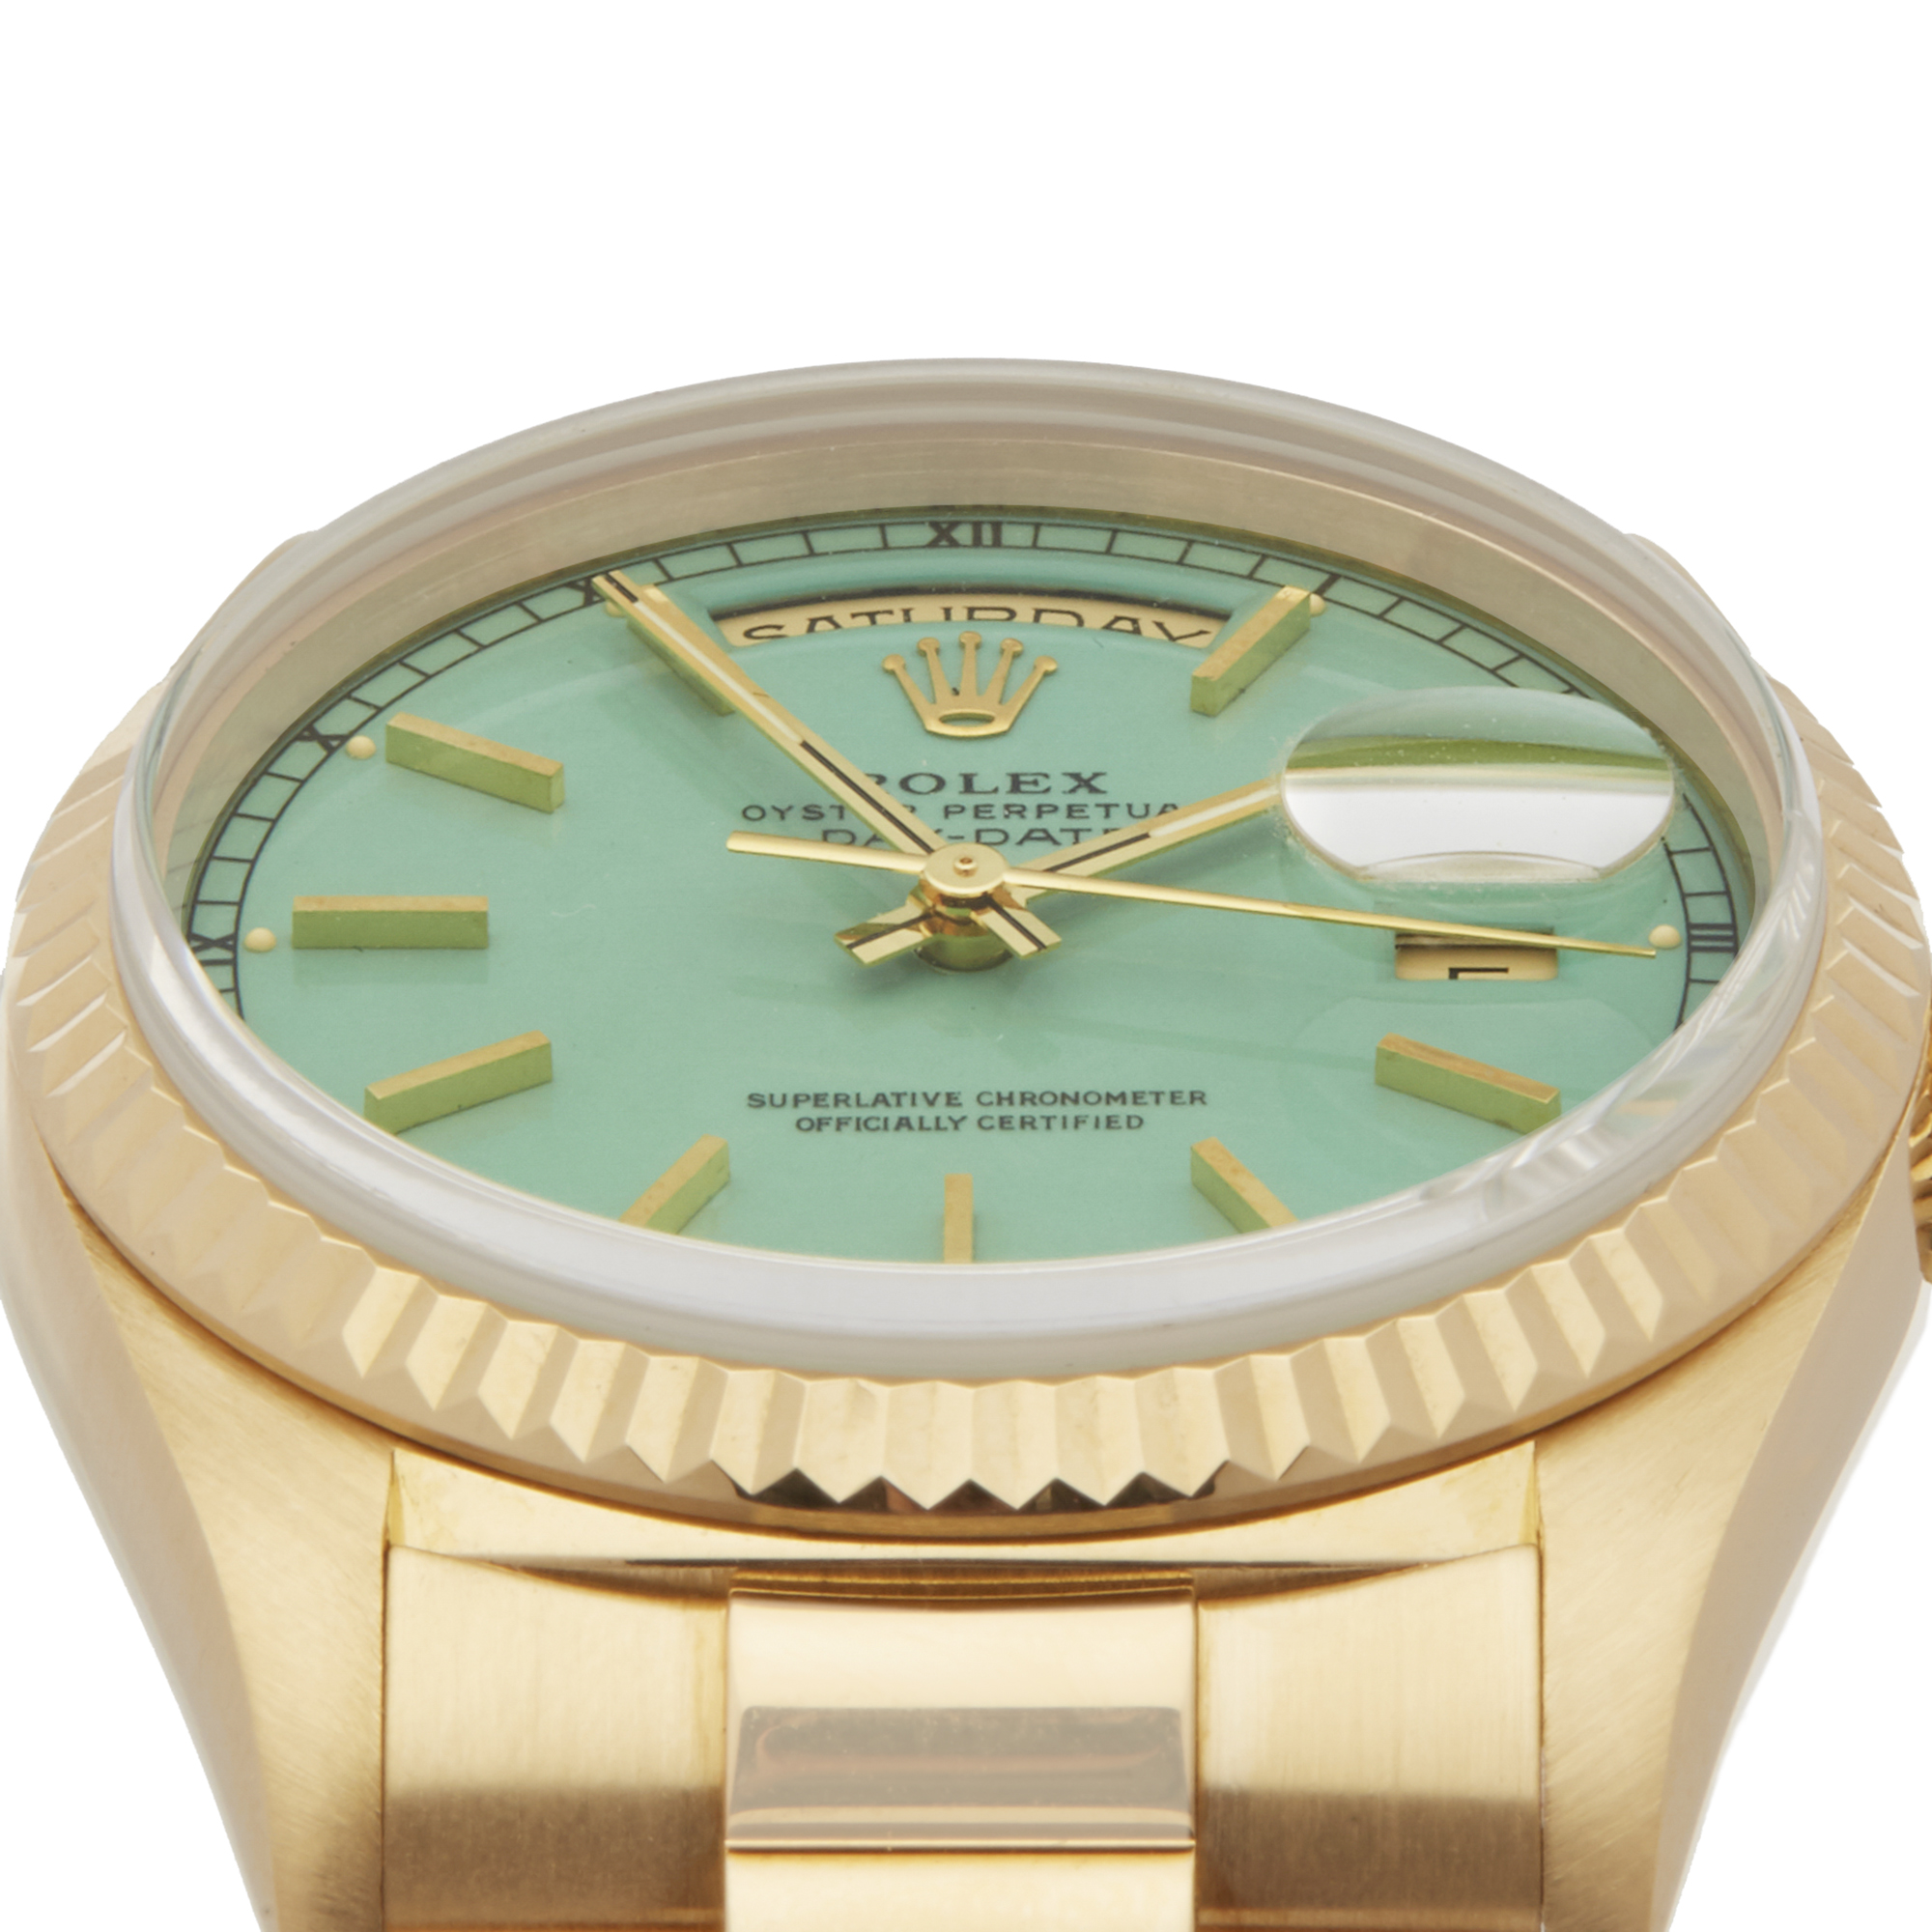 Lot 27 - Rolex Day-Date 36 Stella Dial 18k Yellow Gold - 18238